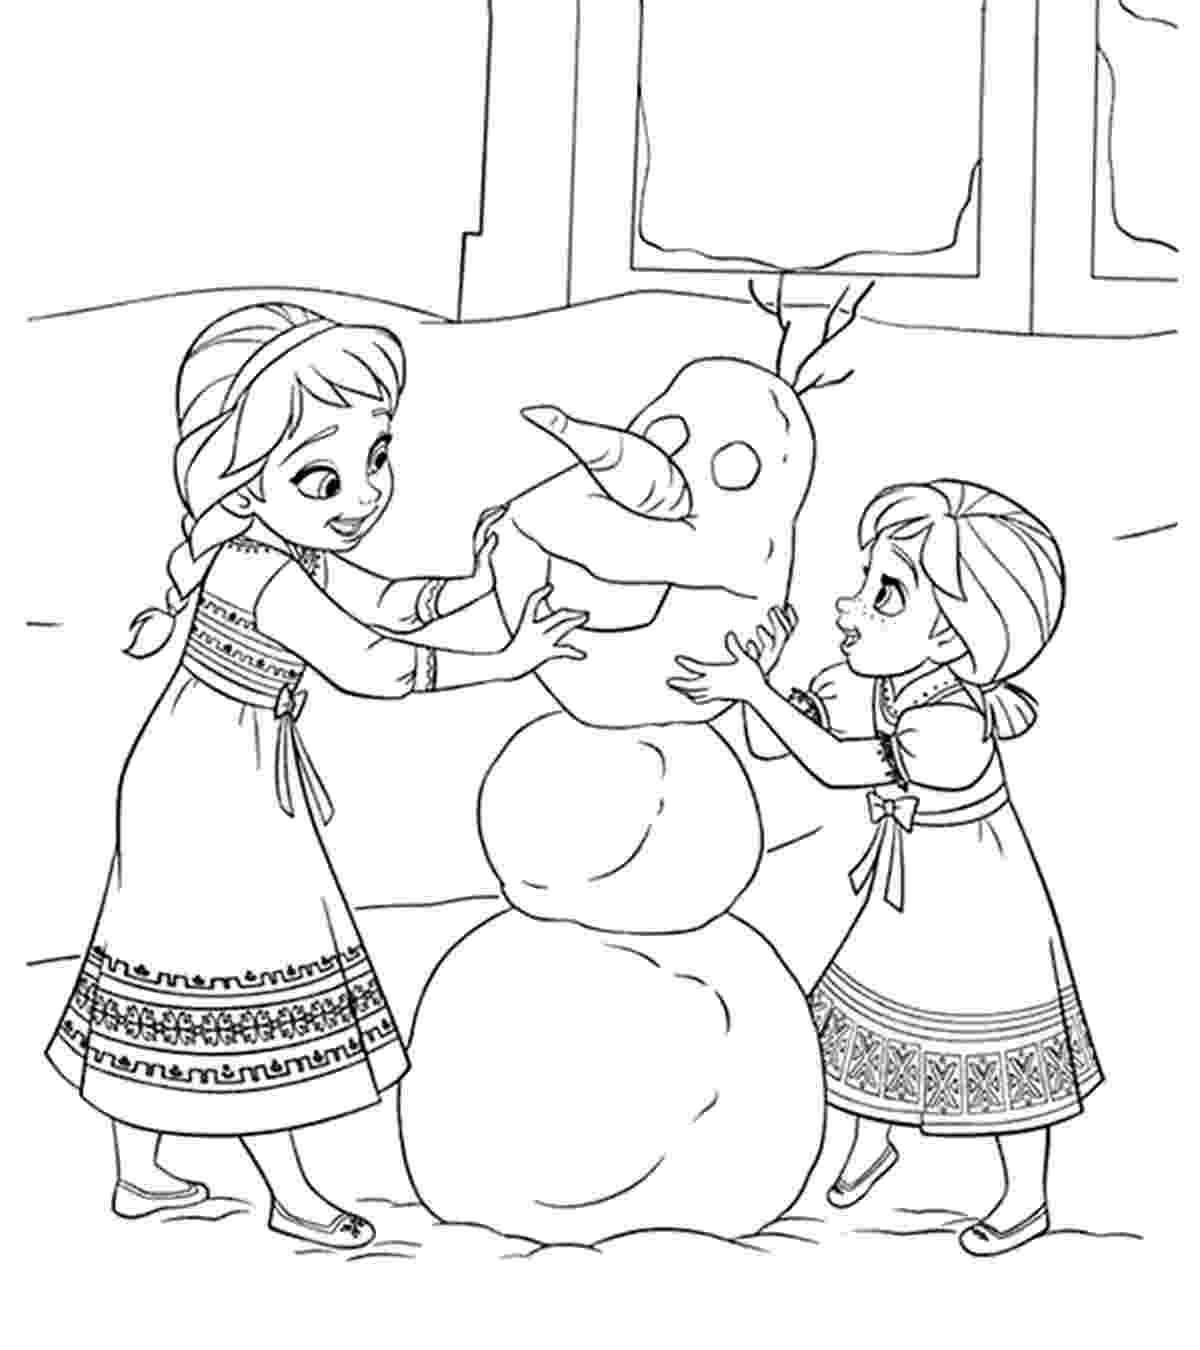 frozen printable colouring pages disney coloring pages momjunction frozen printable pages colouring